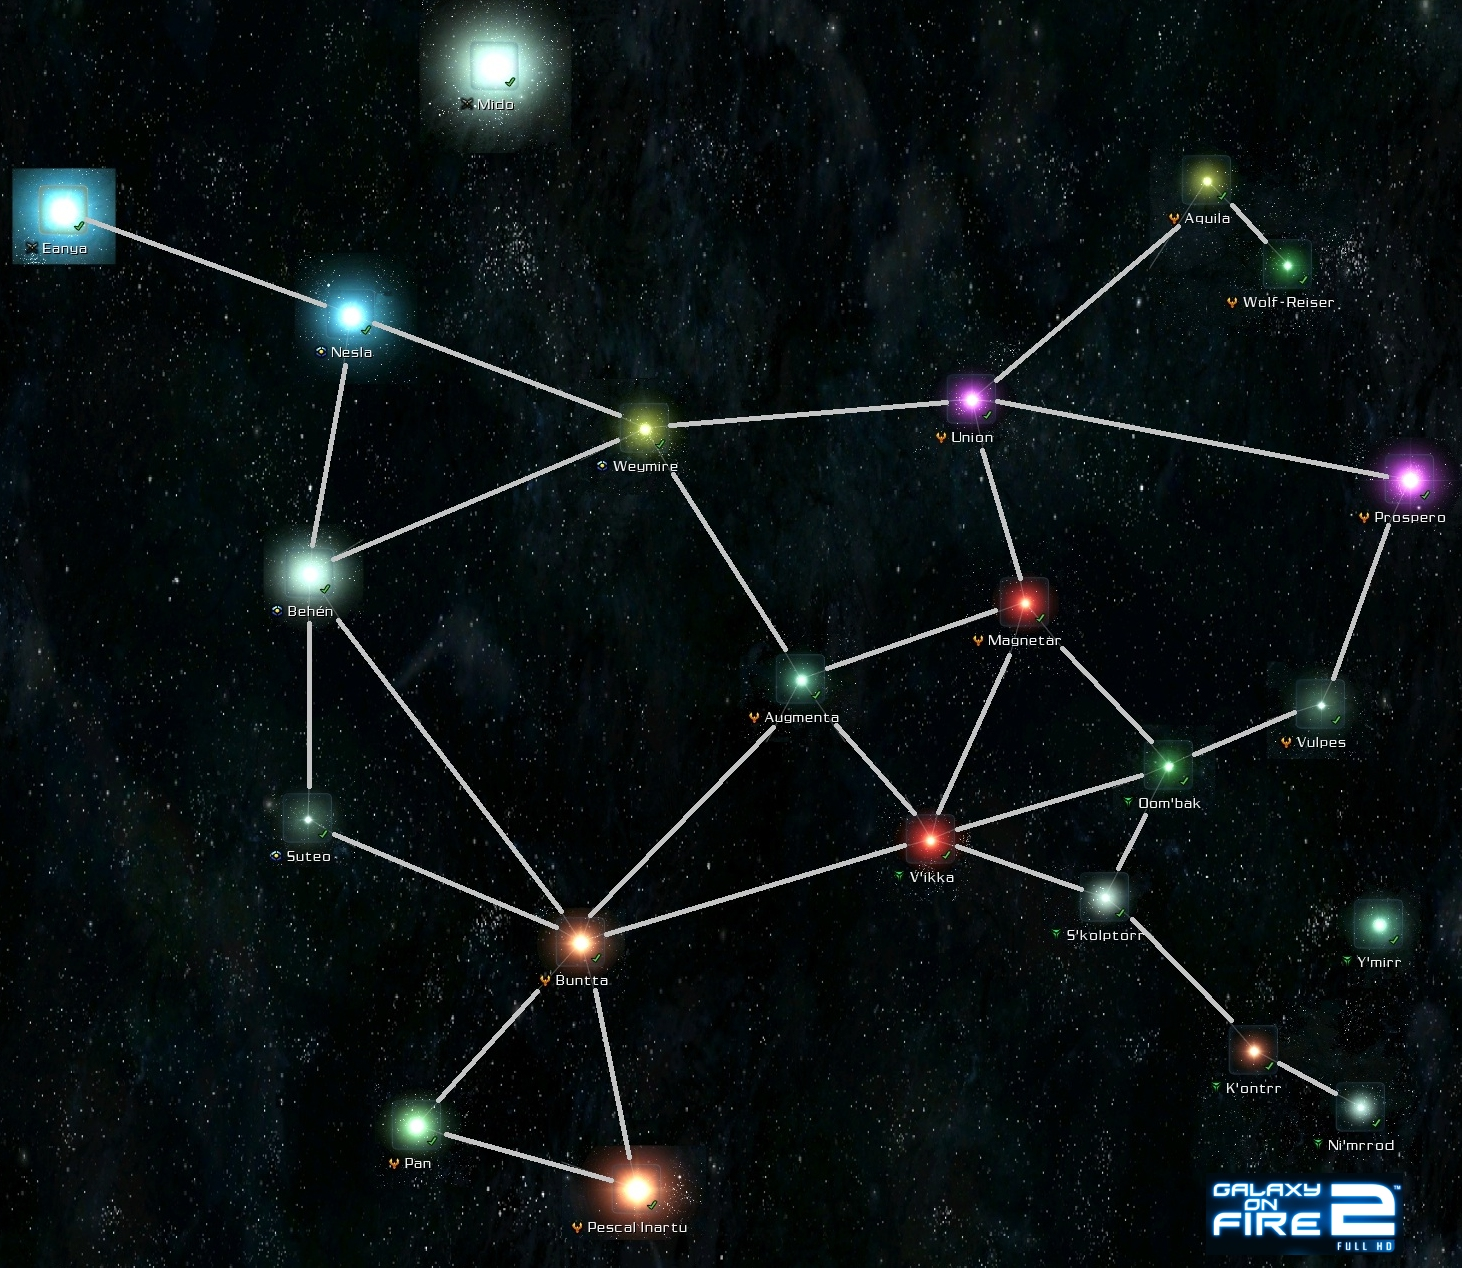 gof  galaxy map. image  gof  galaxy map  galaxy on fire wiki  fandom